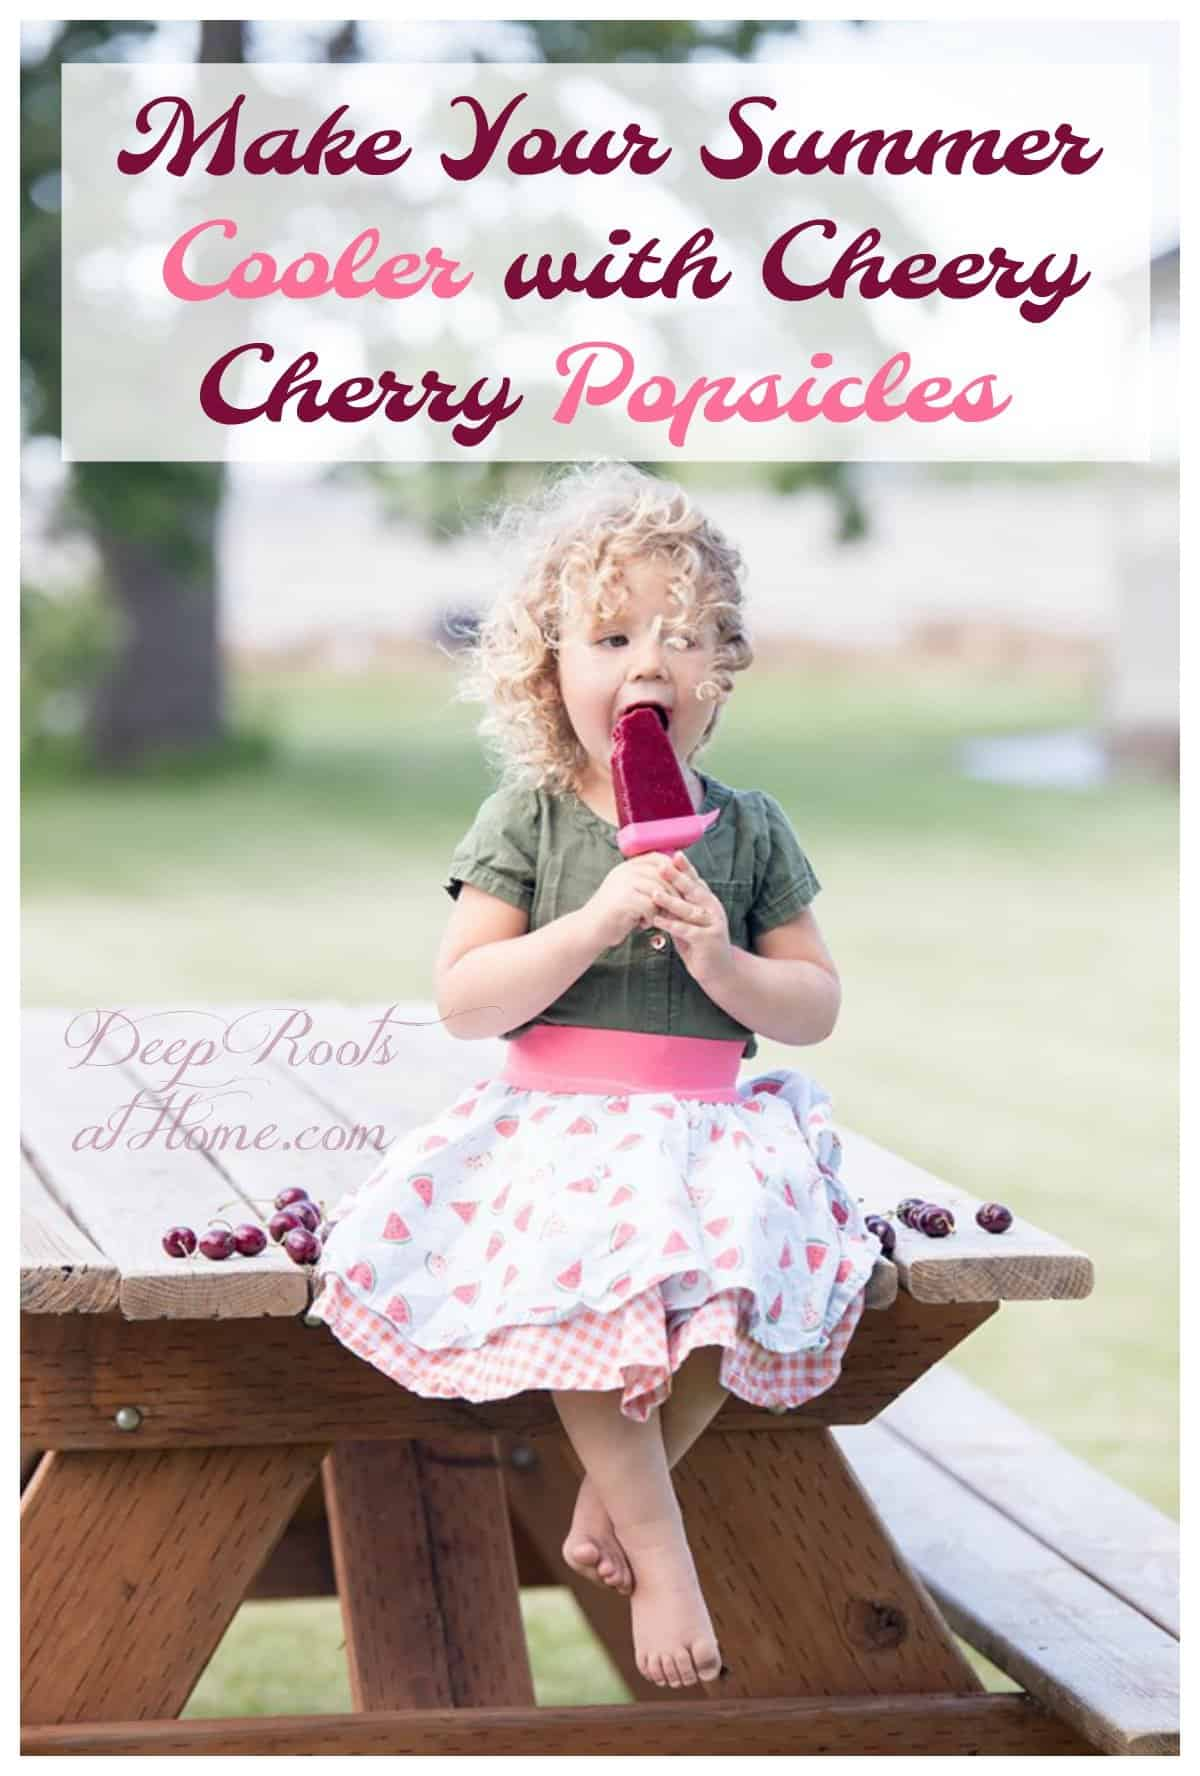 Make Your Summer Cooler with Cheery Cherry Popsicles!